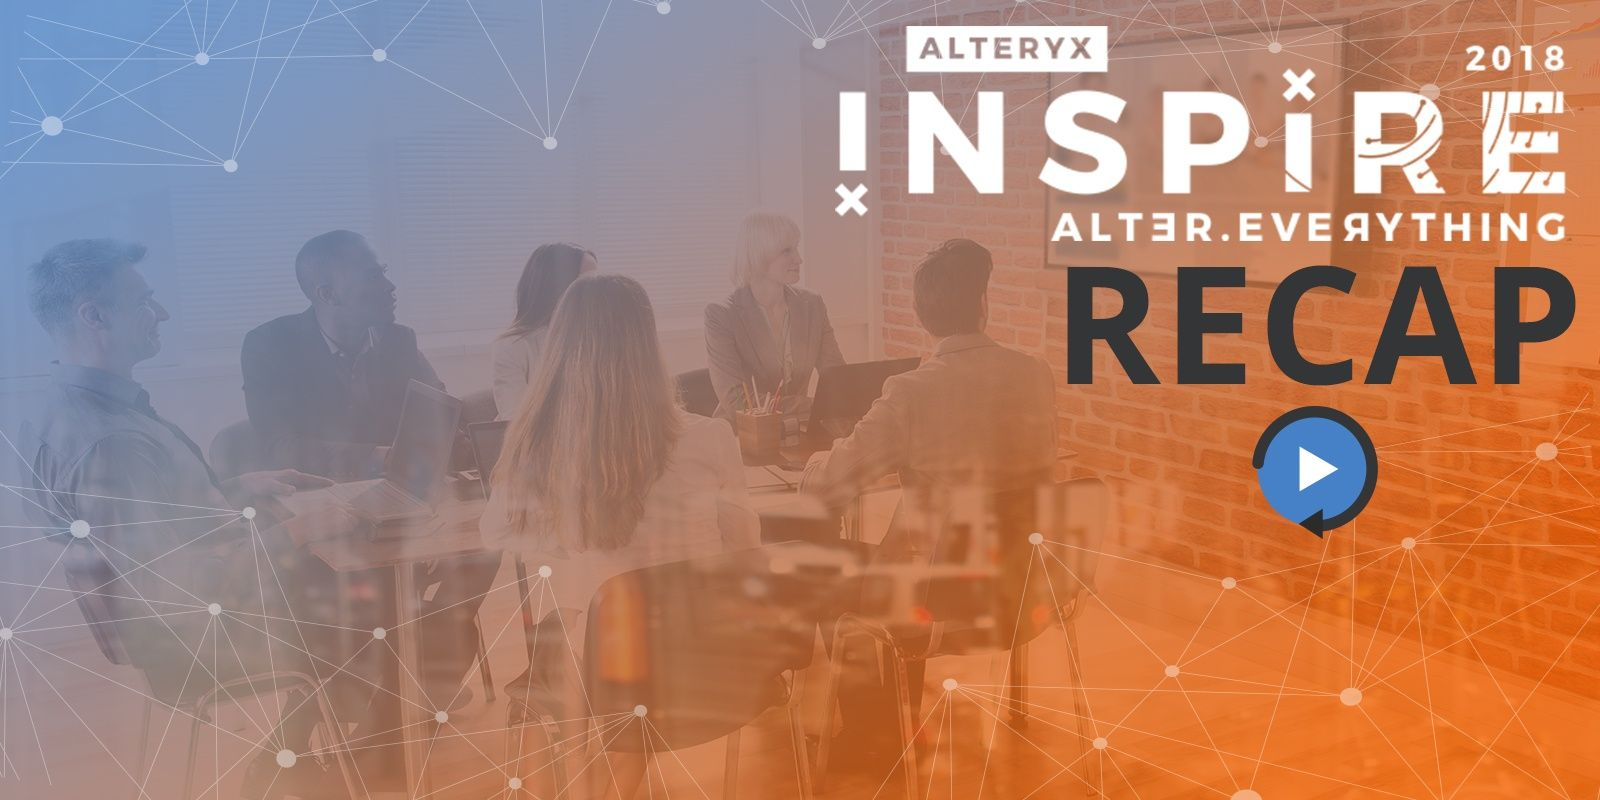 Webinar: Alteryx Inspire Recap and Tips and Tricks 2018!